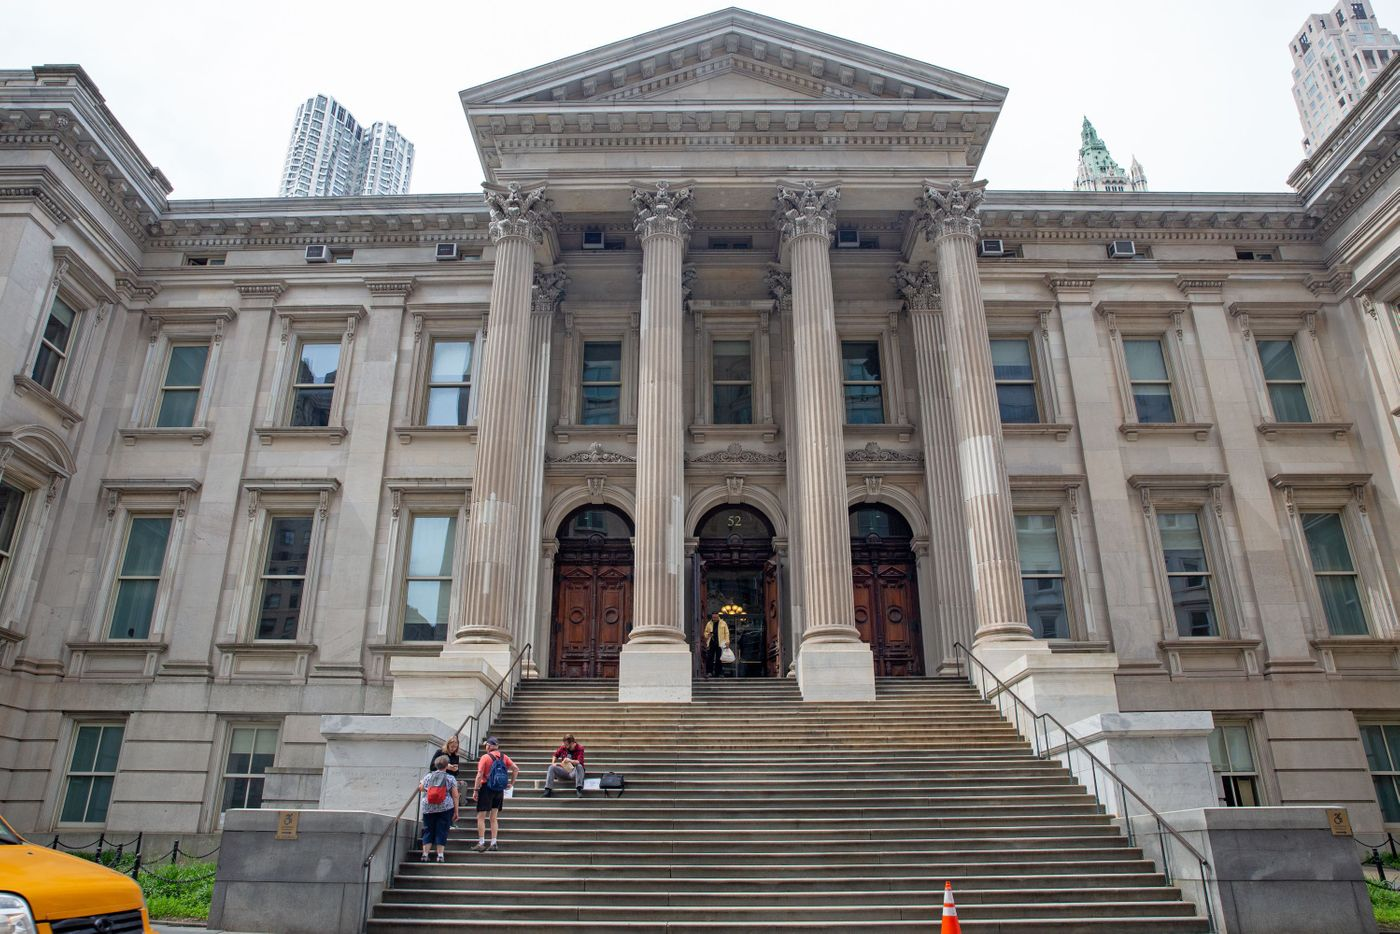 The Department of Education headquarters in the old Tweed Courthouse building on Chambers Street in lower Manhattan, June 7, 2019.